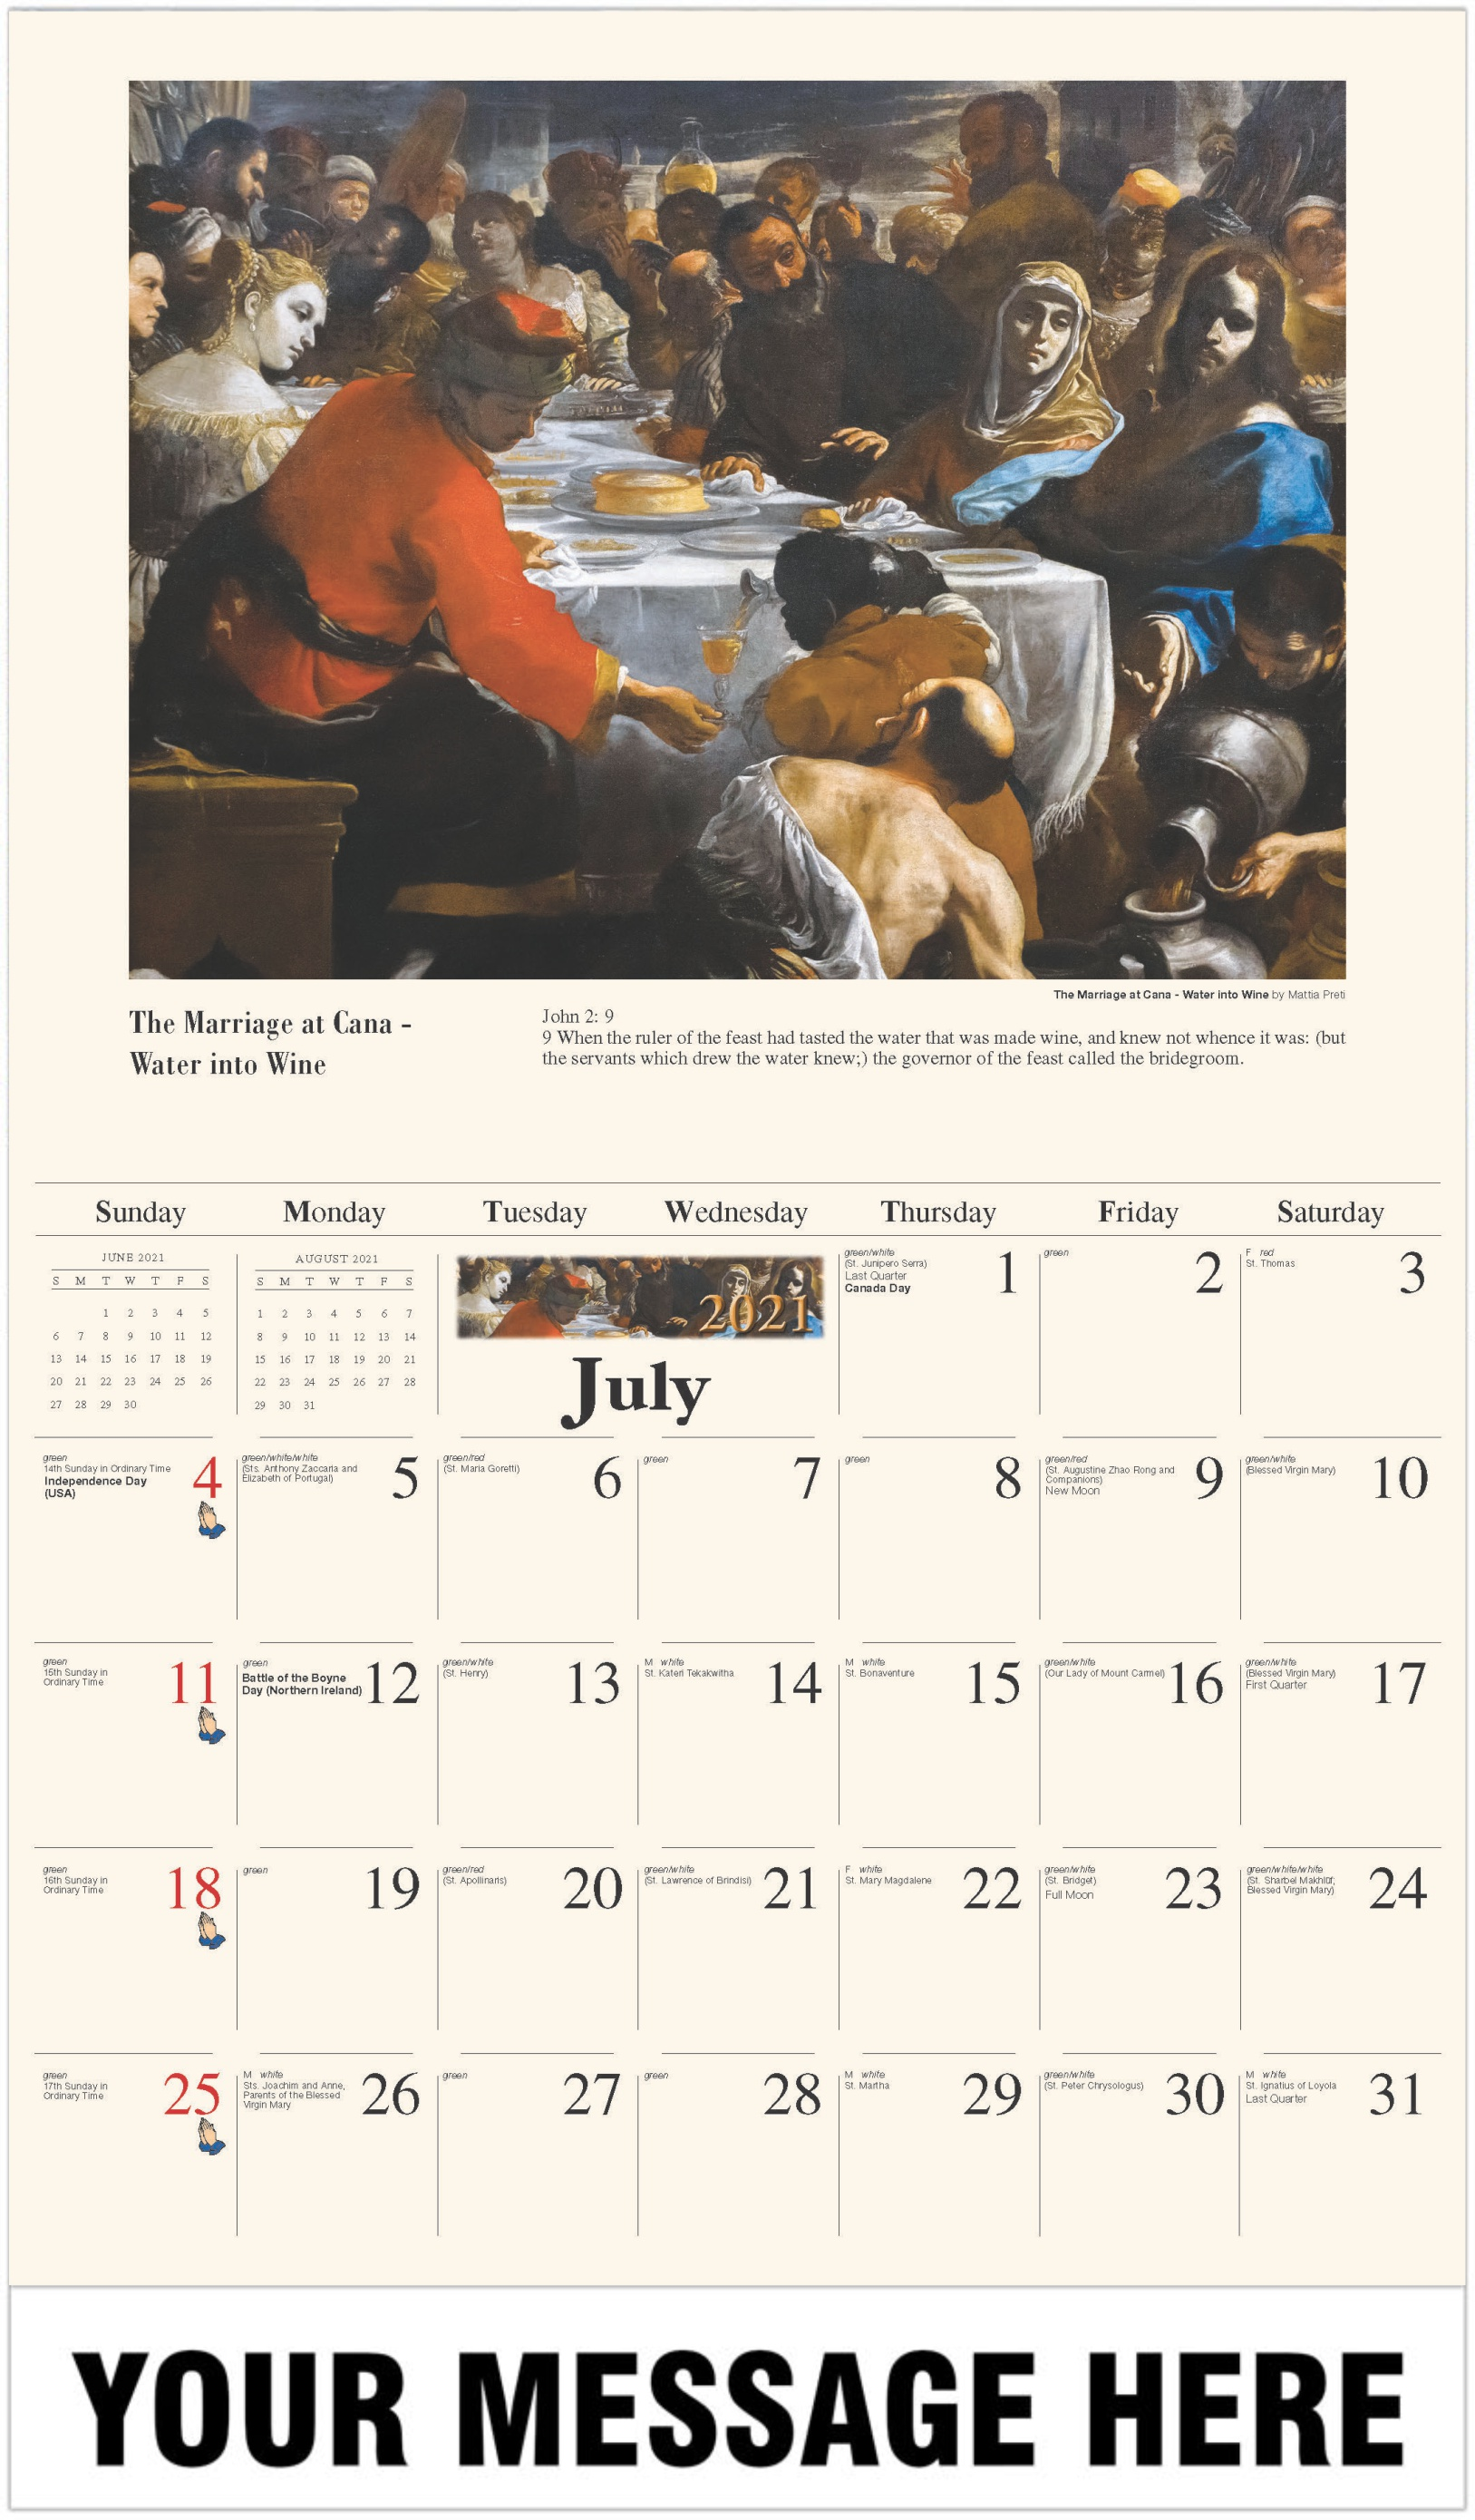 The Marriage at Cana - July - Catholic Inspiration 2021 Promotional Calendar